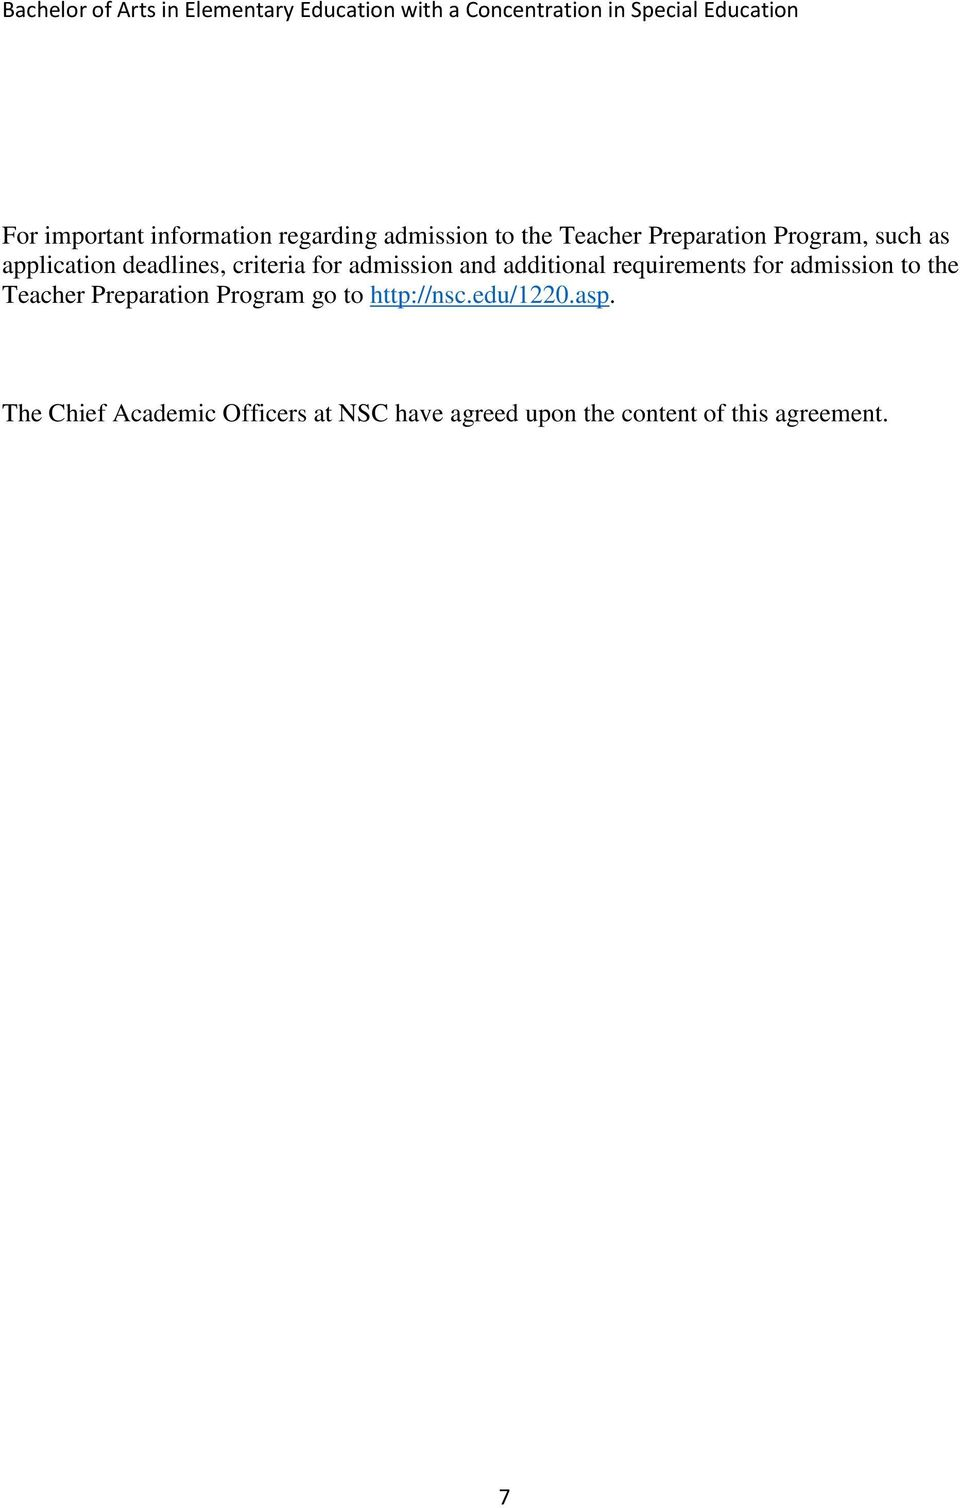 for admission to the Teacher Preparation Program go to http://nsc.edu/1220.asp.